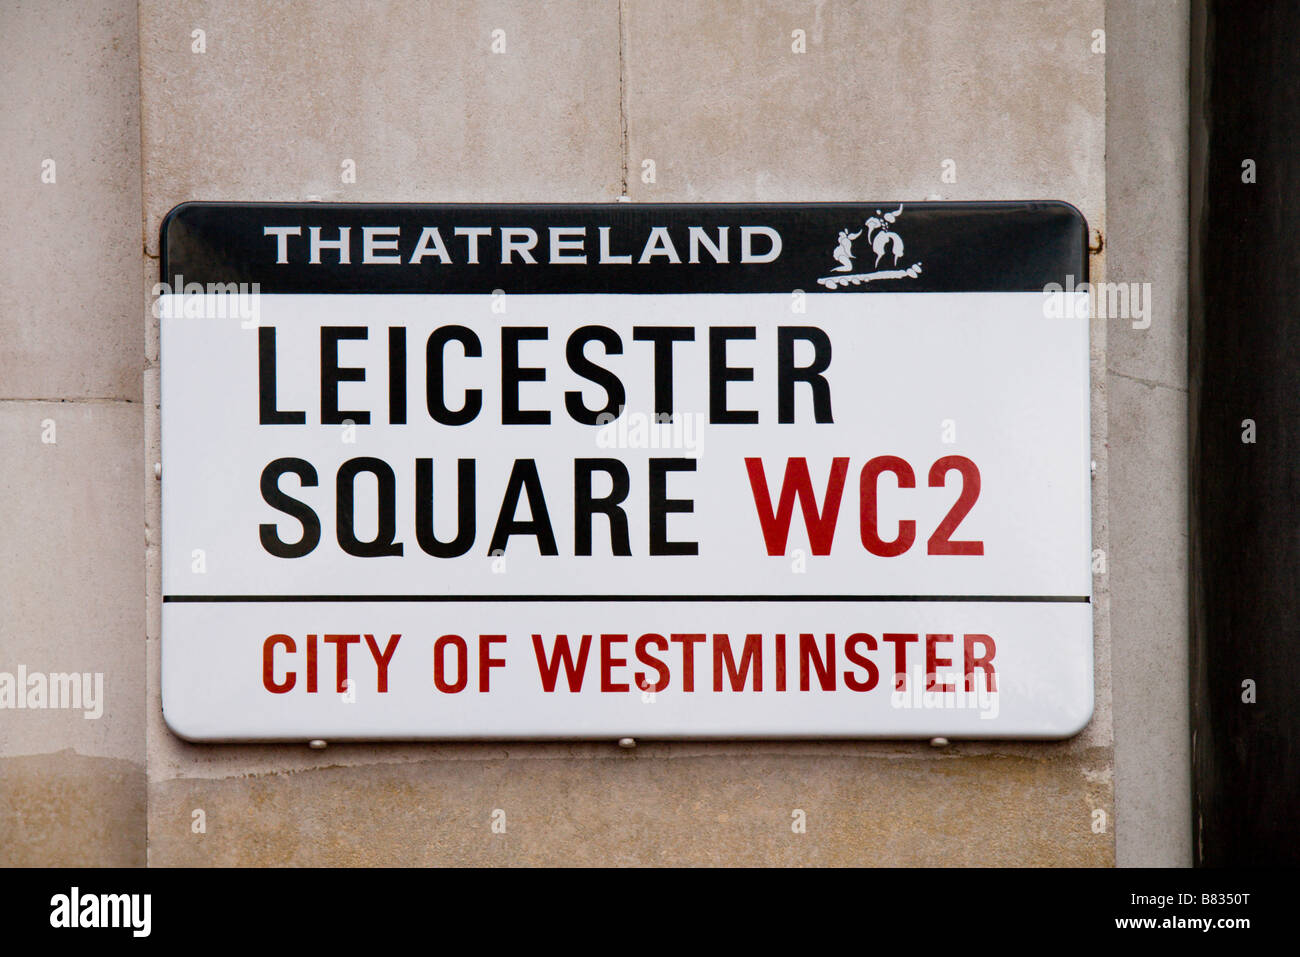 Street sign for Leicester Square, Westminster, London.  Jan 2009 Stock Photo